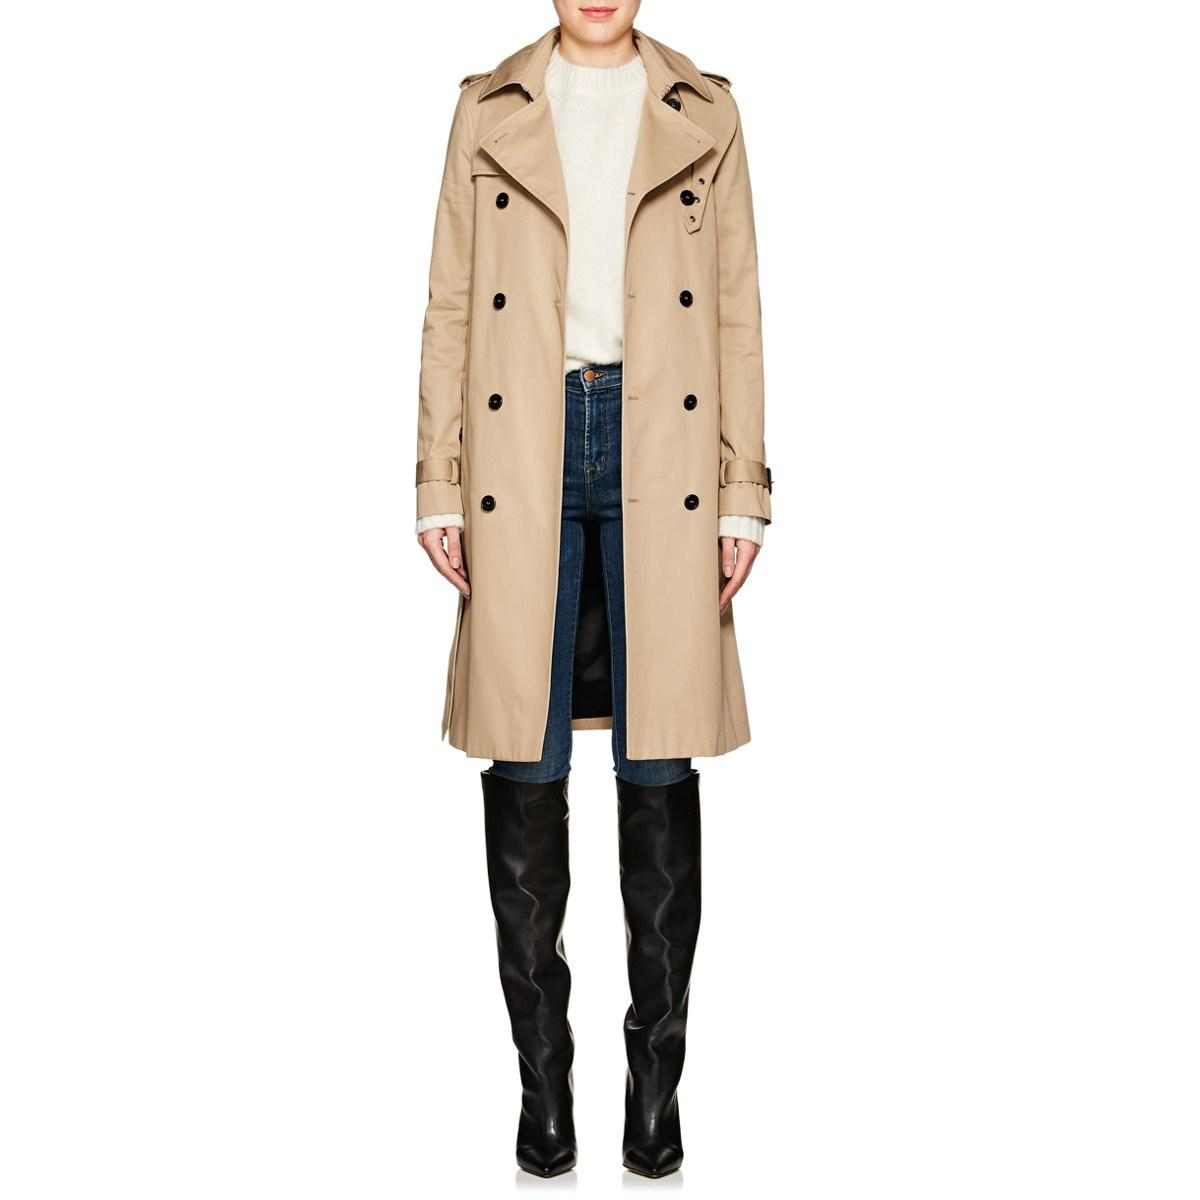 965e724cd29 Saint Laurent Twill Belted Trench Coat in Natural - Lyst